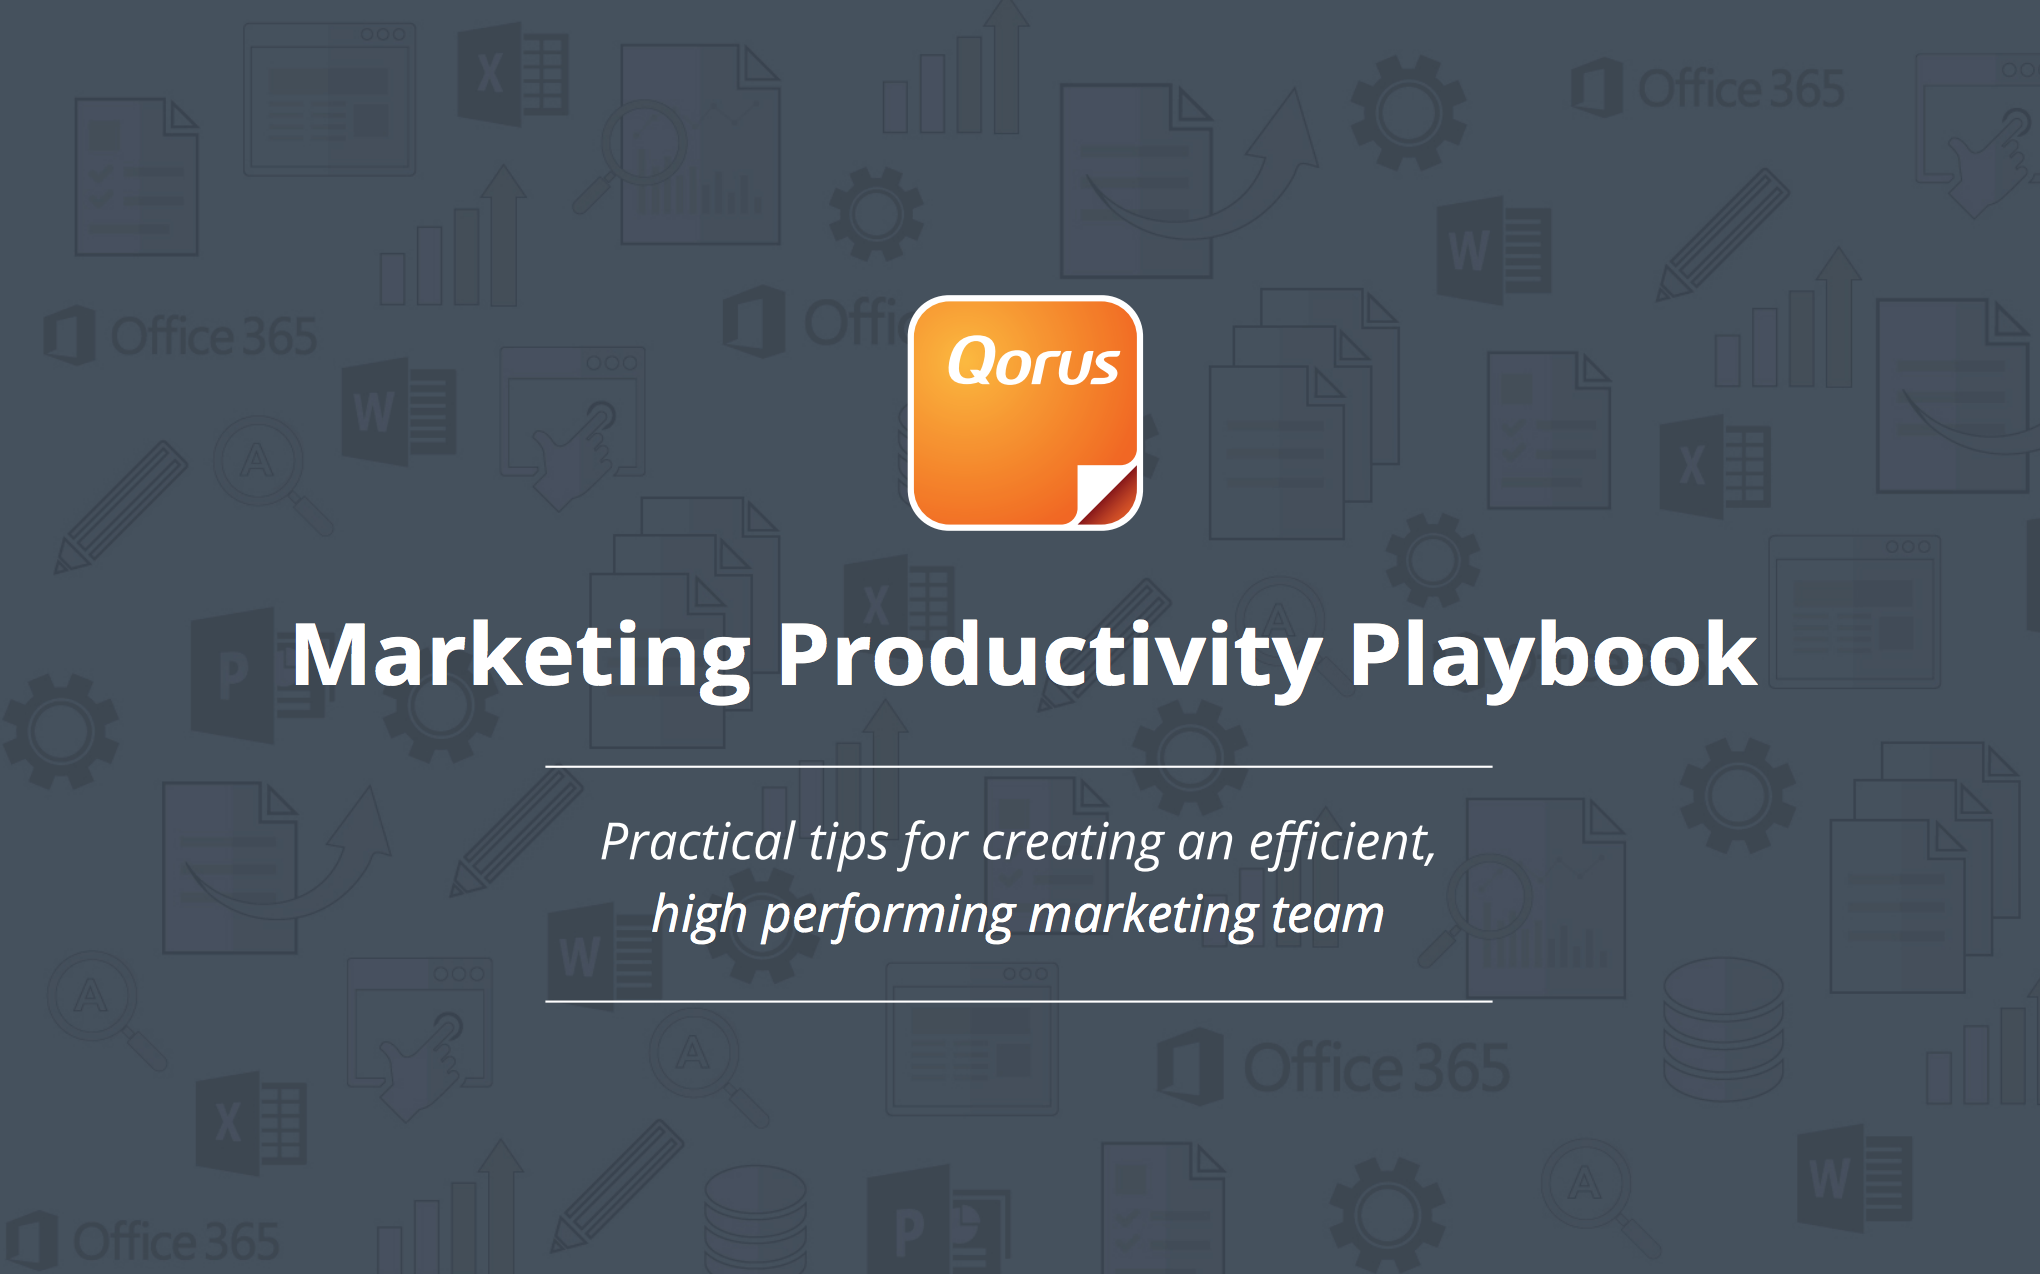 Qorus Productivity Marketing Playbook